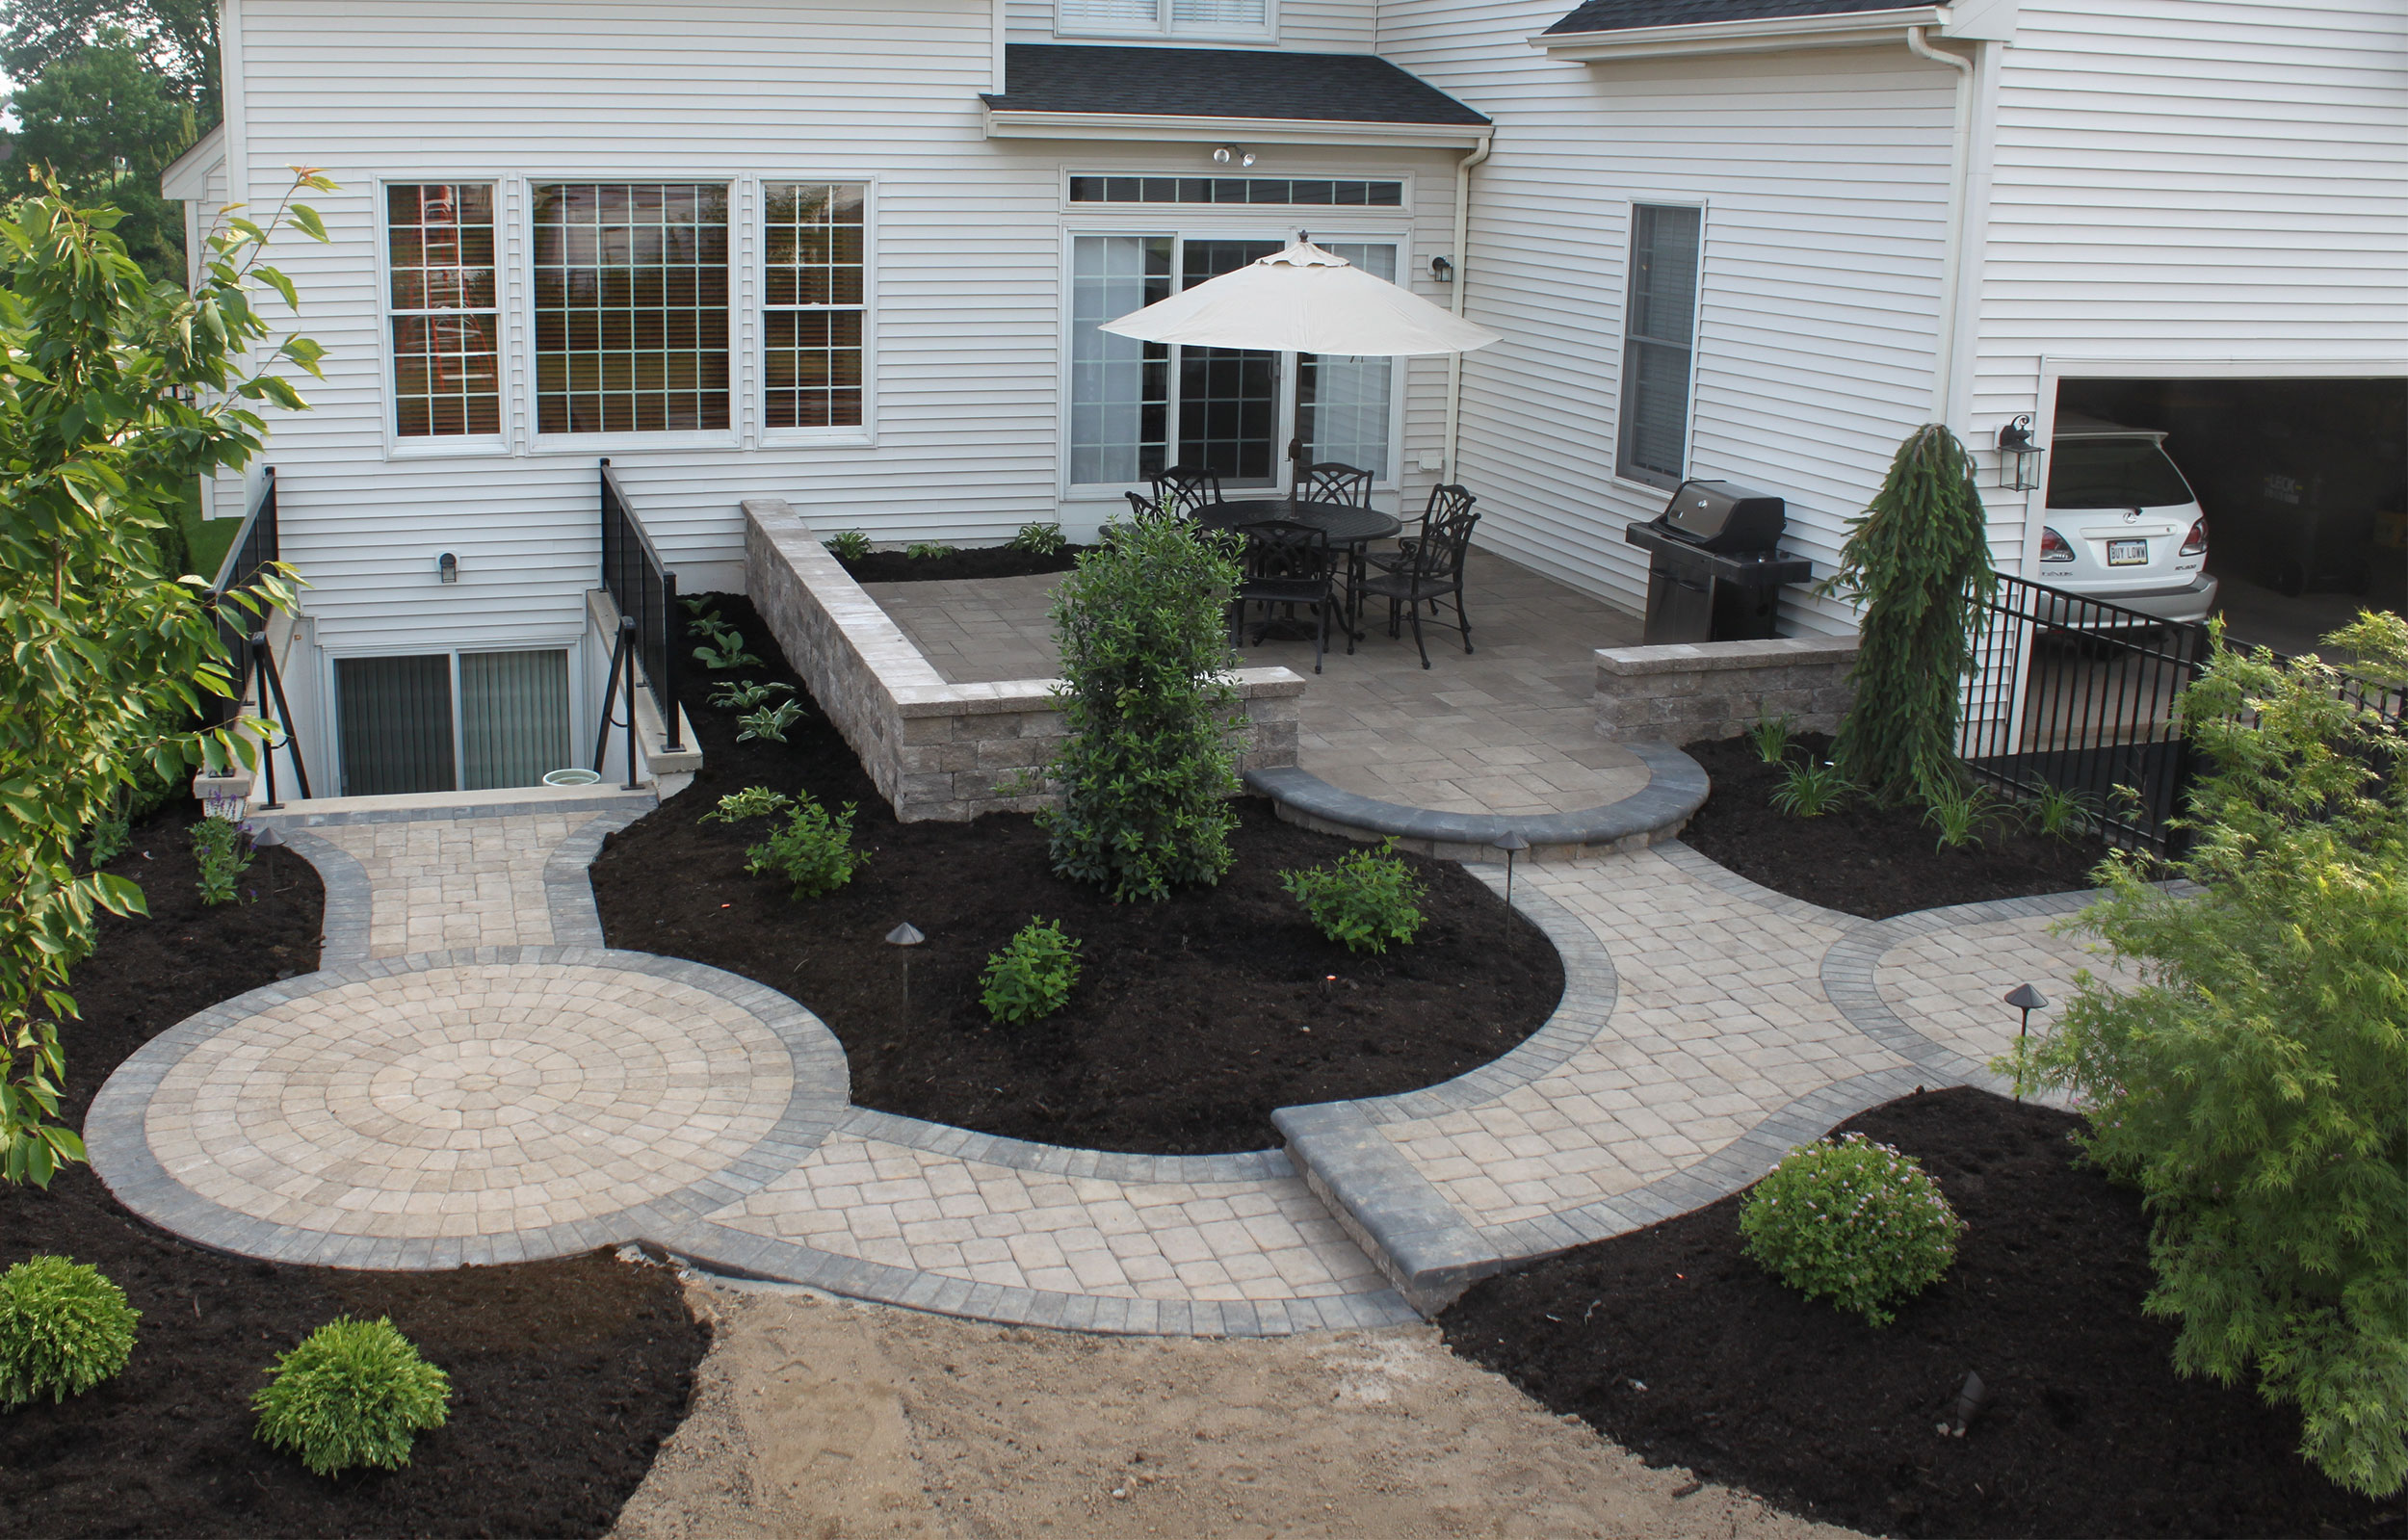 Furlong Pa Small Patio | R&R Caddick Landscape Design on Small Brick Patio Ideas id=59216